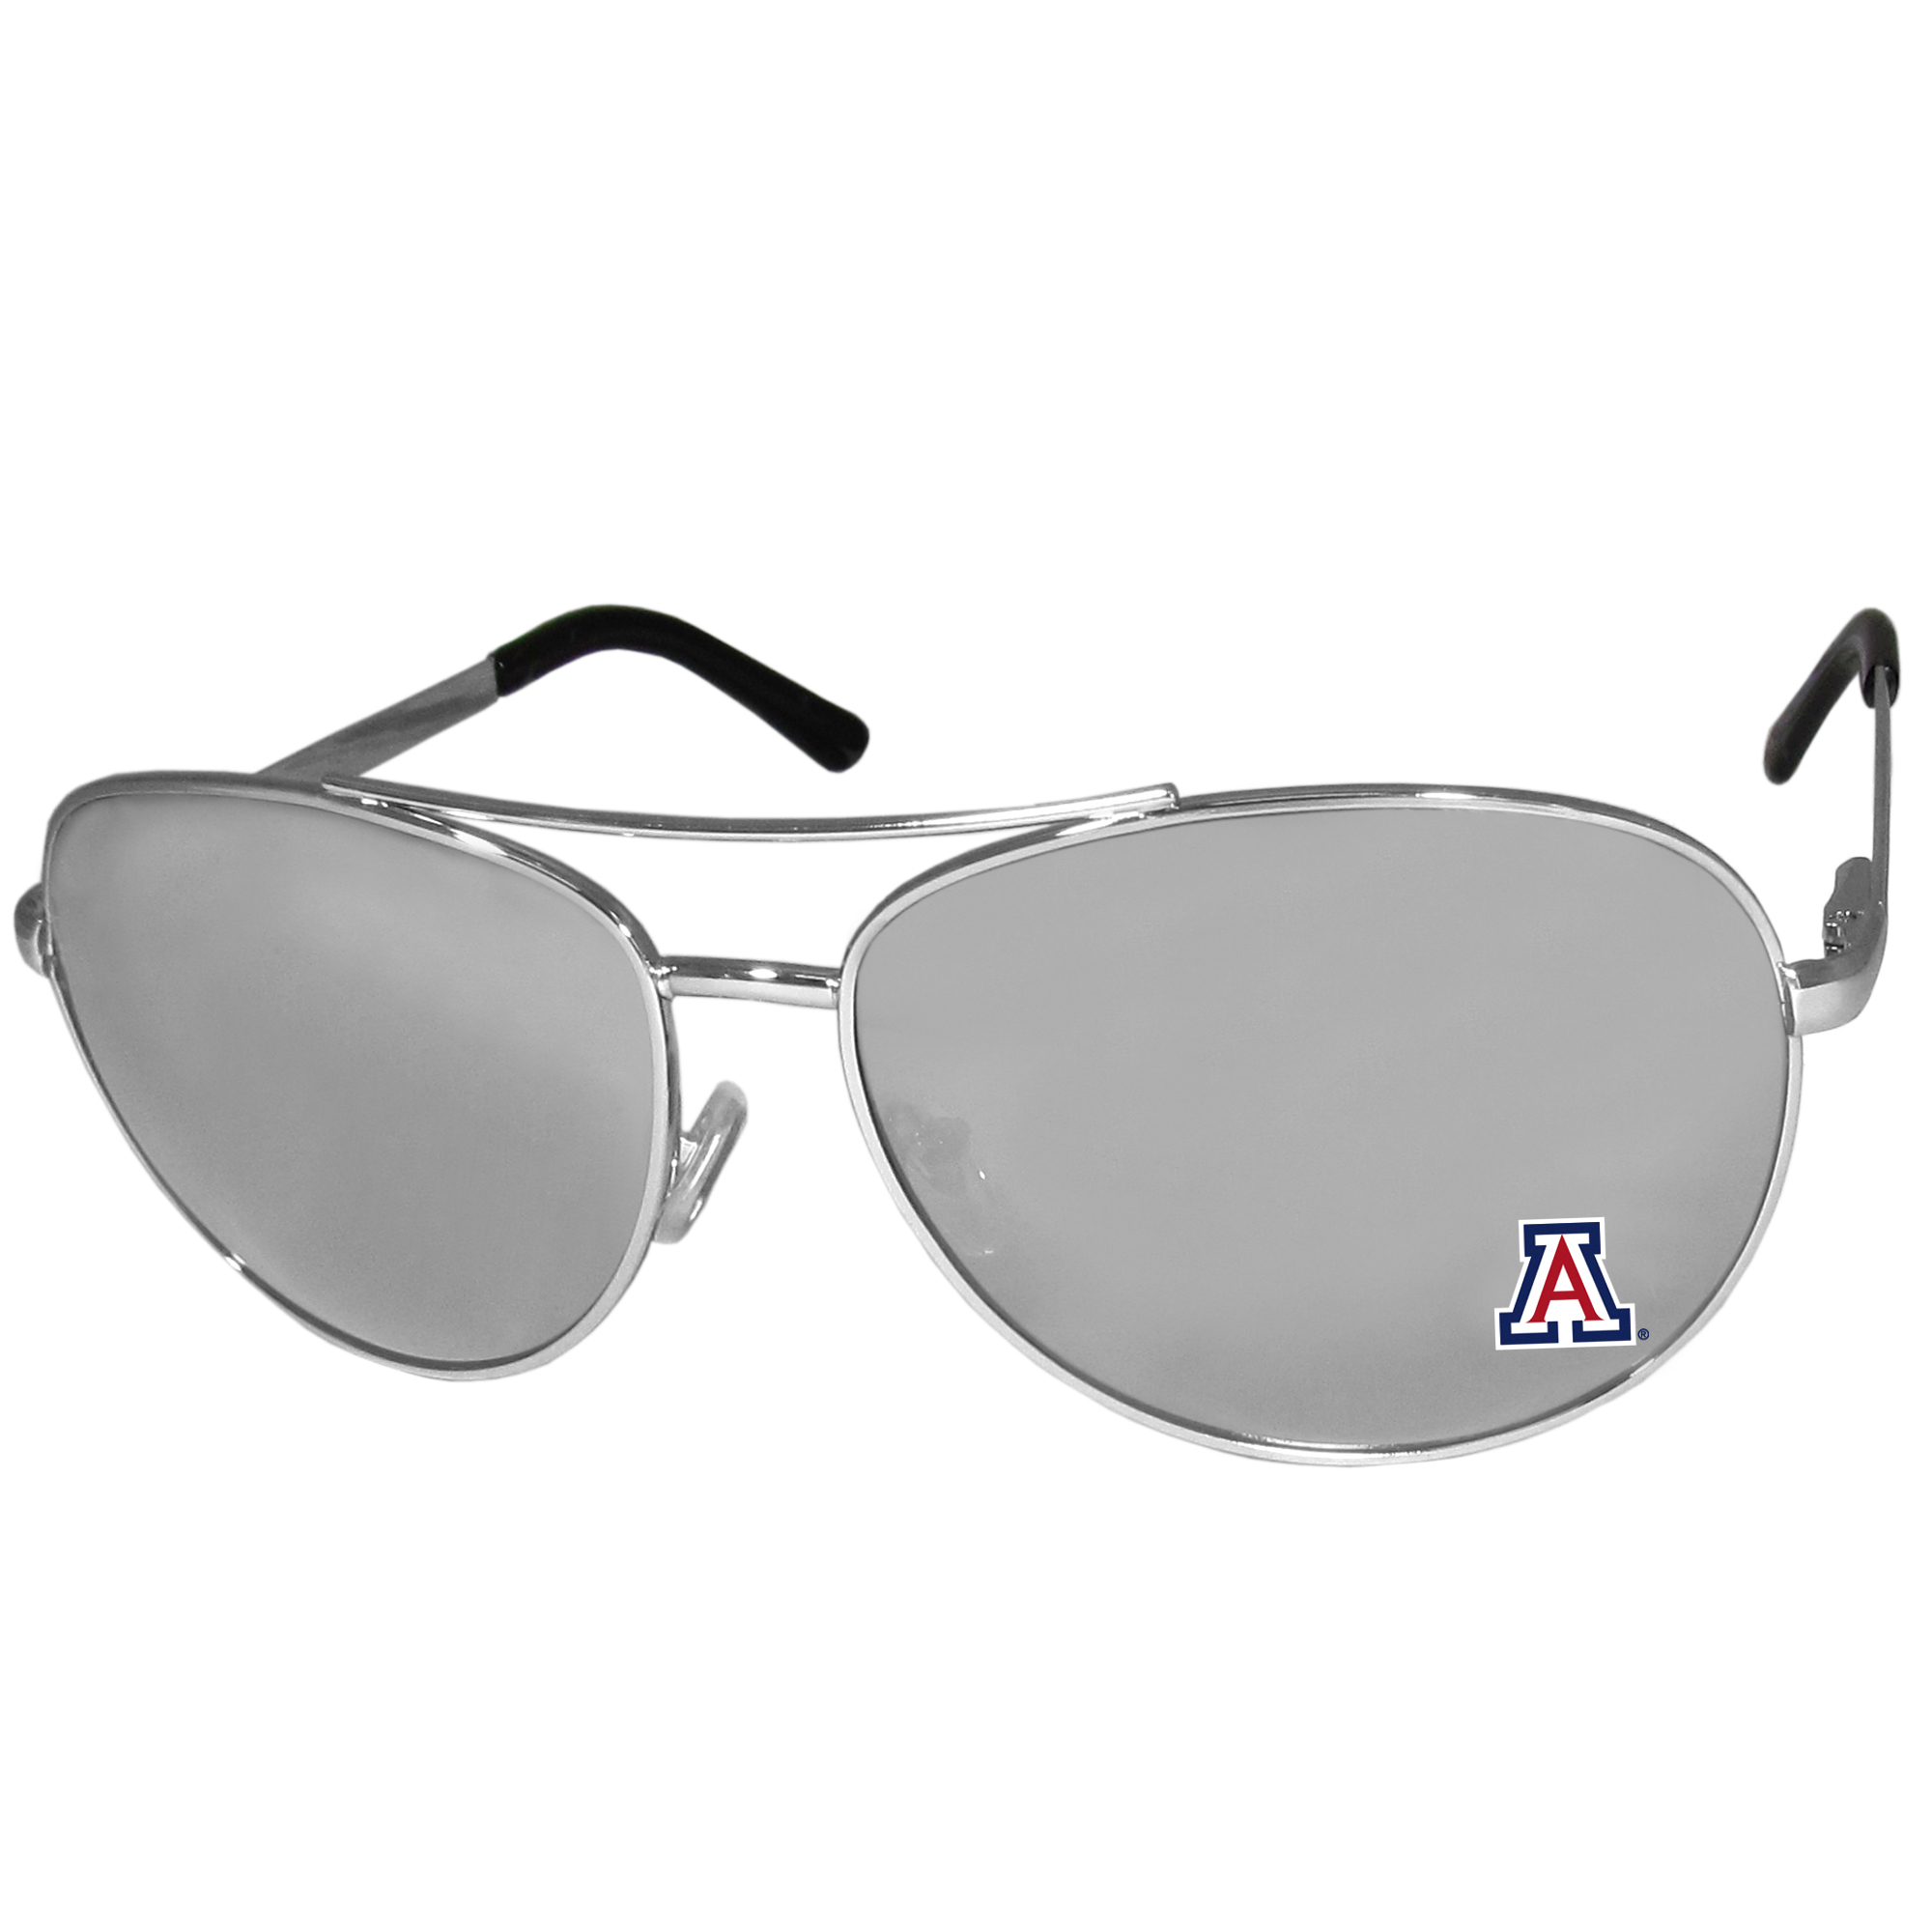 Arizona Wildcats Aviator Sunglasses - Our aviator sunglasses have the iconic aviator style with mirrored lenses and metal frames. The glasses feature a silk screened Arizona Wildcats logo in the corner of the lense. 100% UVA/UVB protection.